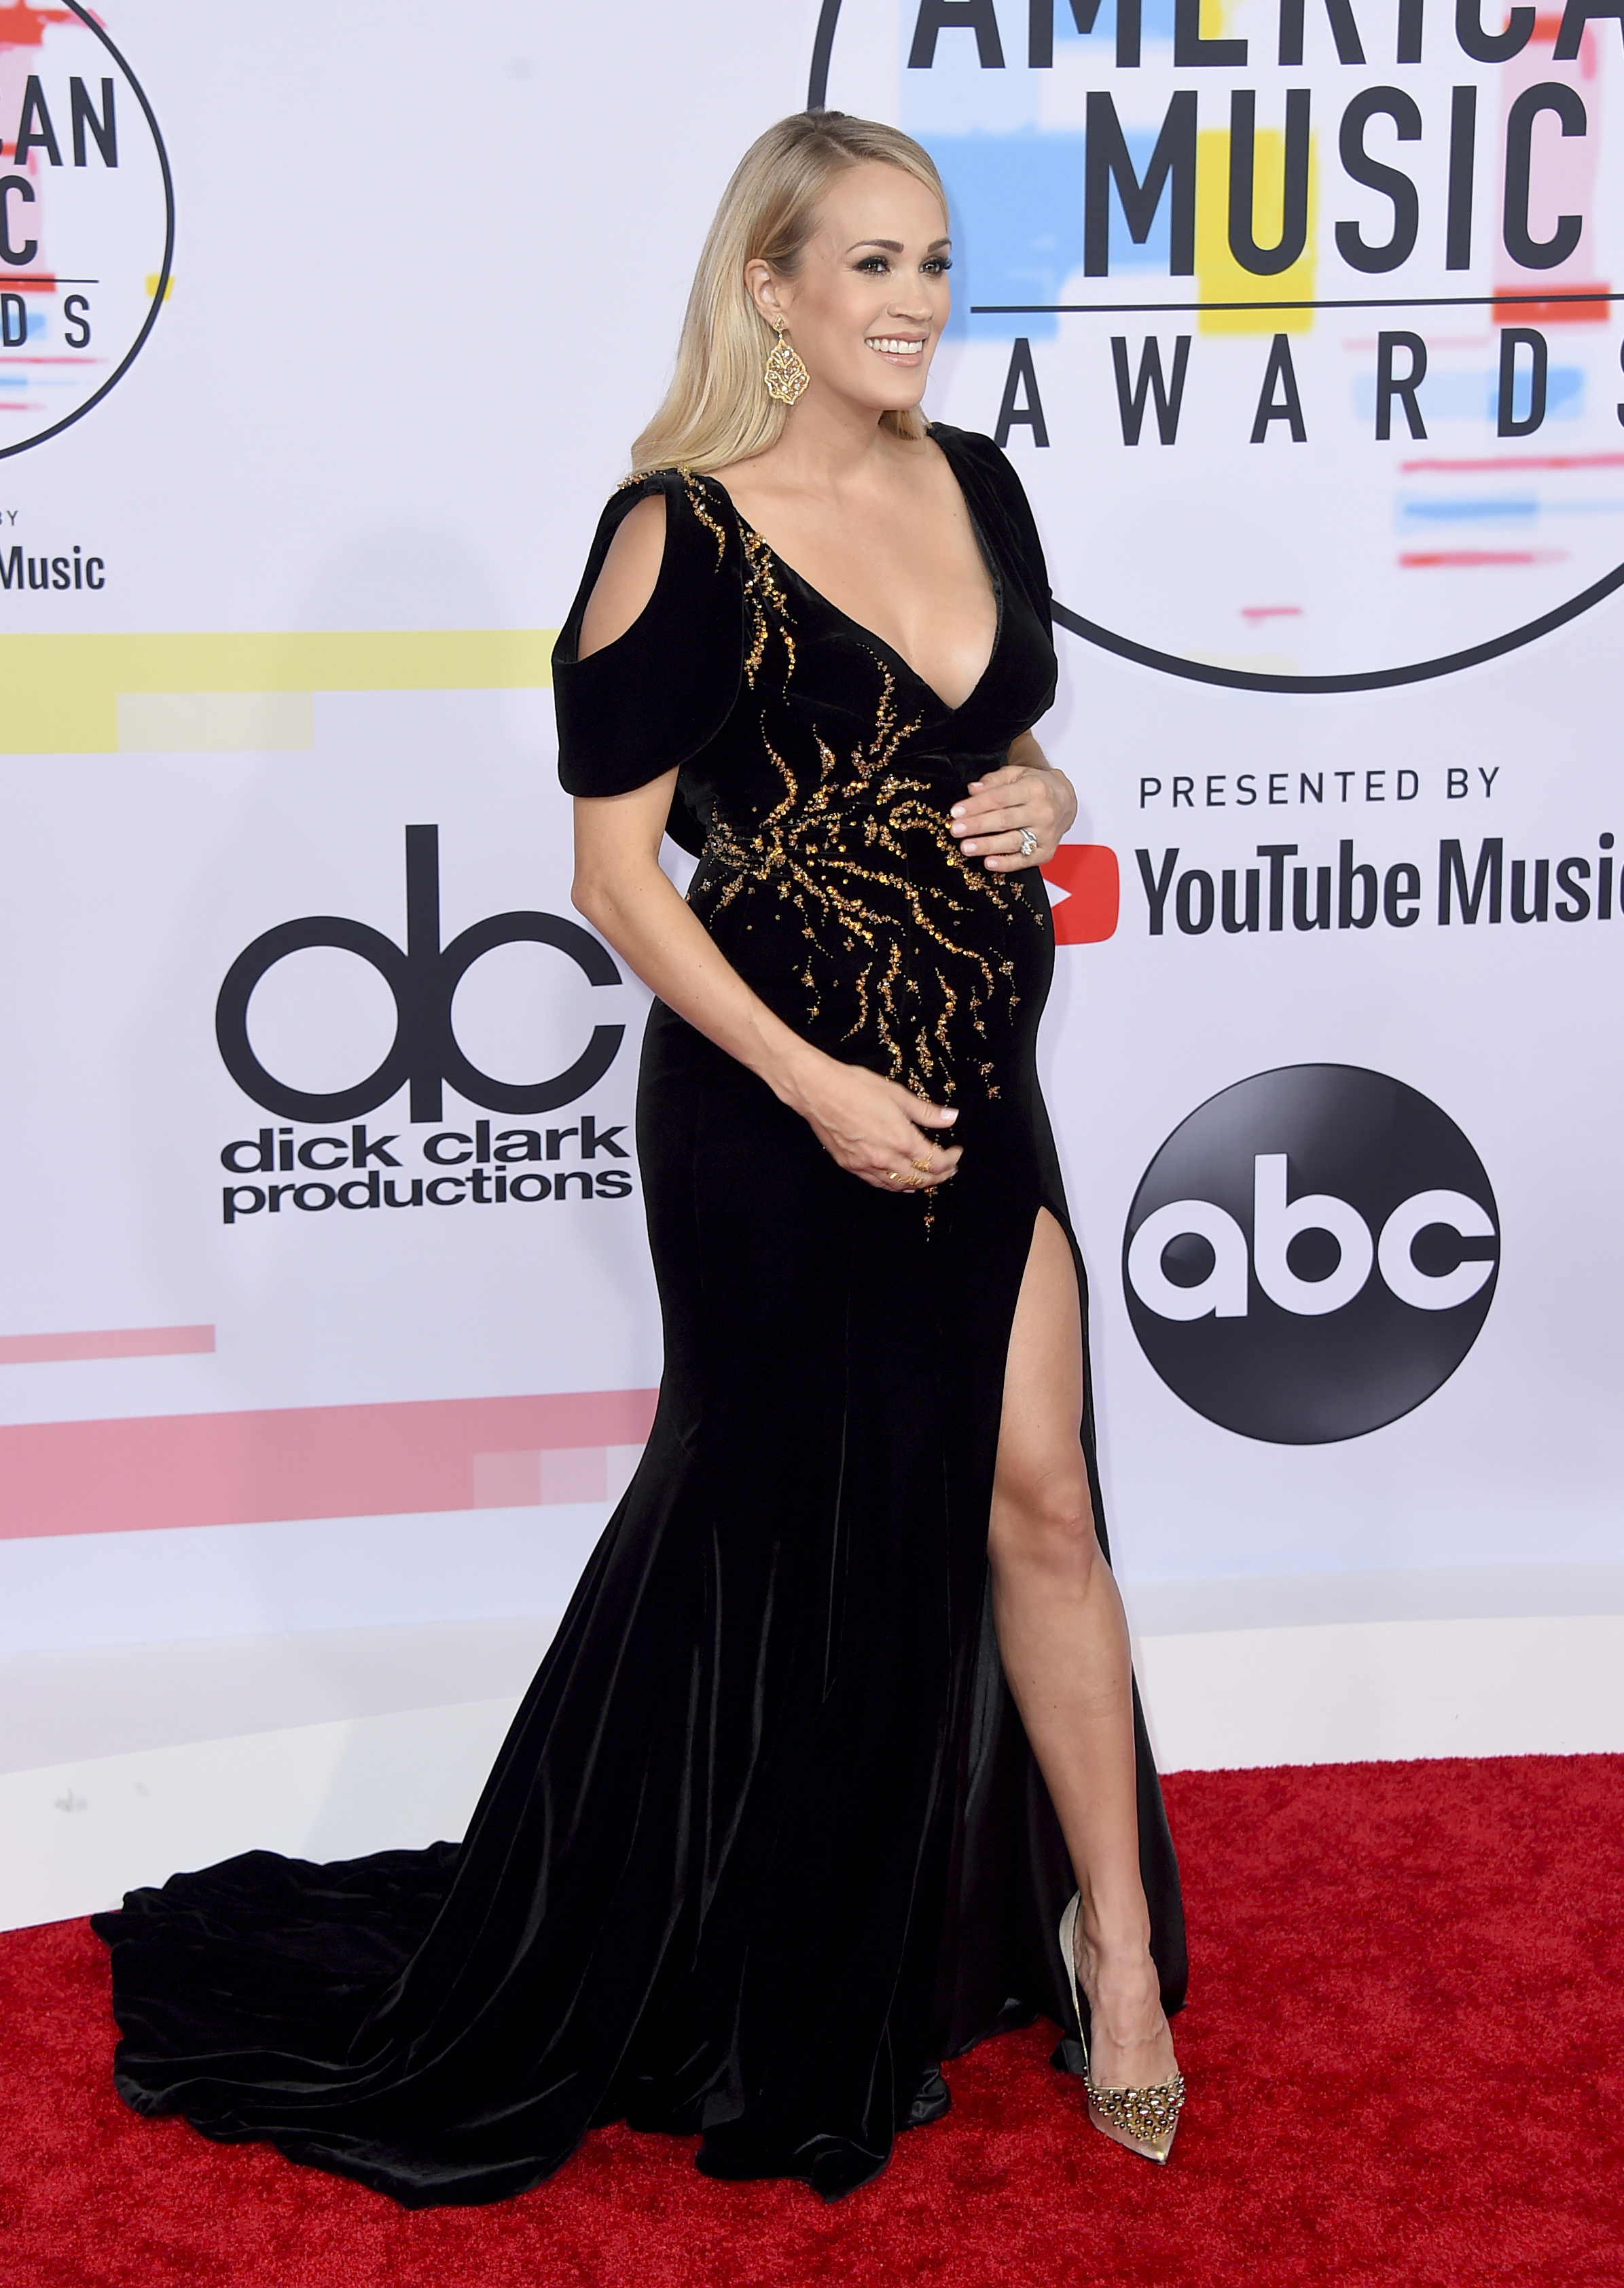 "<div class=""meta image-caption""><div class=""origin-logo origin-image none""><span>none</span></div><span class=""caption-text"">Carrie Underwood arrives at the American Music Awards on Tuesday, Oct. 9, 2018, at the Microsoft Theater in Los Angeles. (Jordan Strauss/Invision/AP)</span></div>"